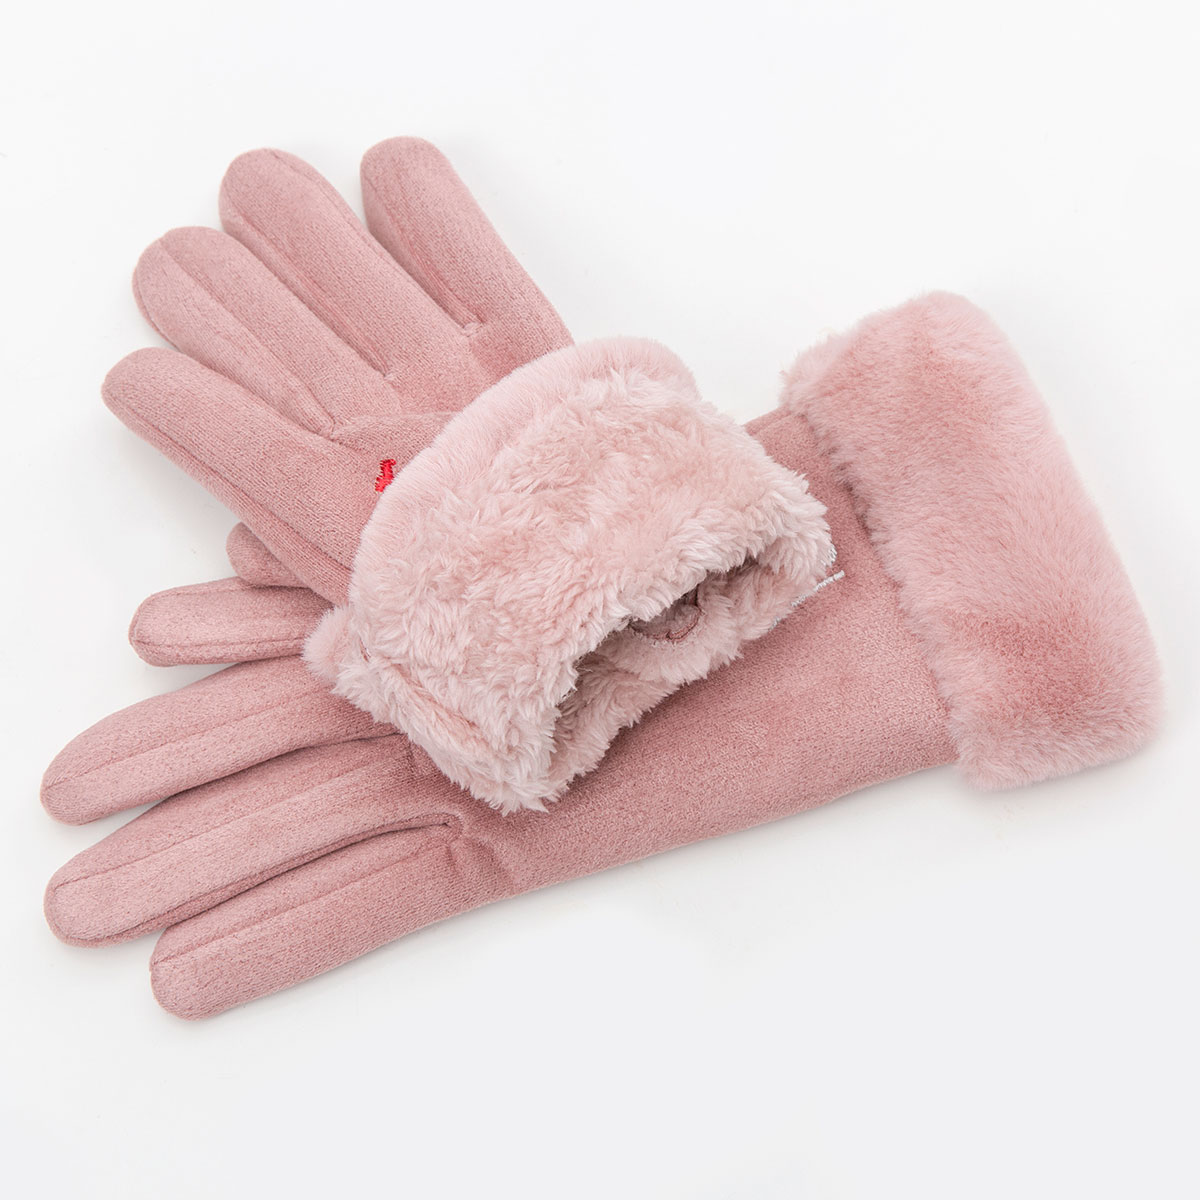 Winter Women Touch Screen Gloves with Embroidery made with a Special Conductive Fabric into Finger Tips for fast Navigation of All Touch Screen Device 2